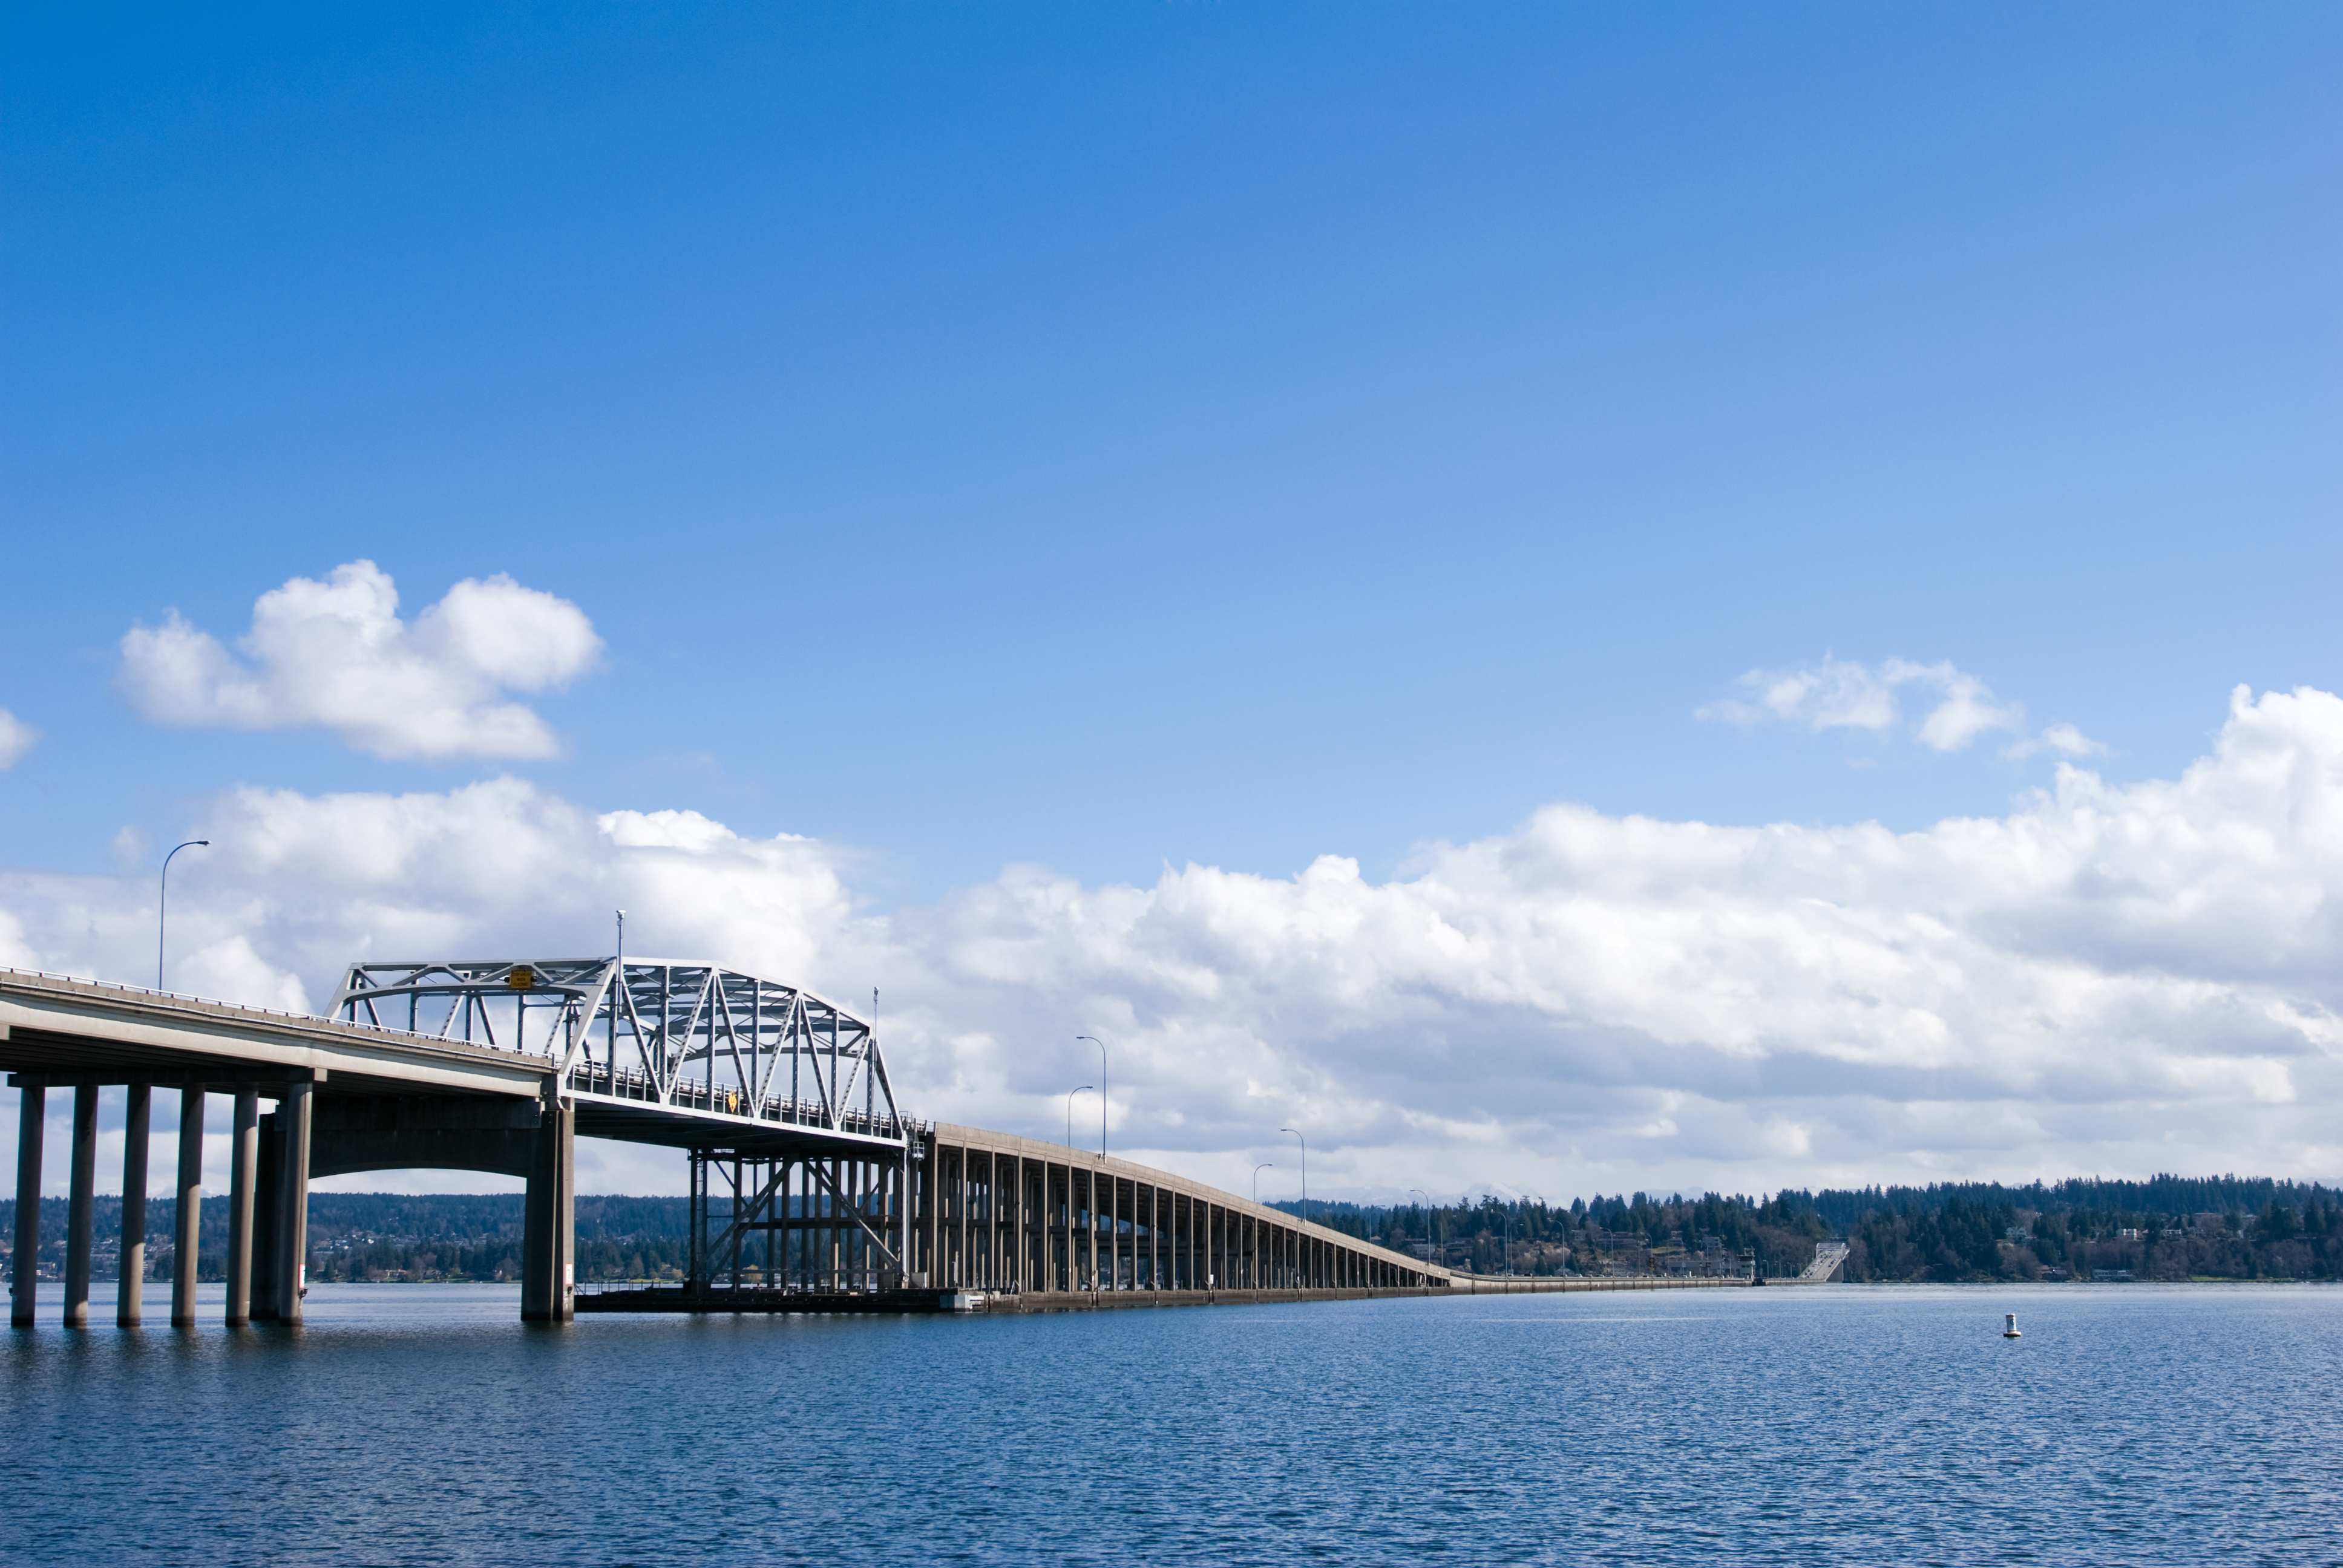 The SR 520, Washington state says, is the longest floating bridge in the world.